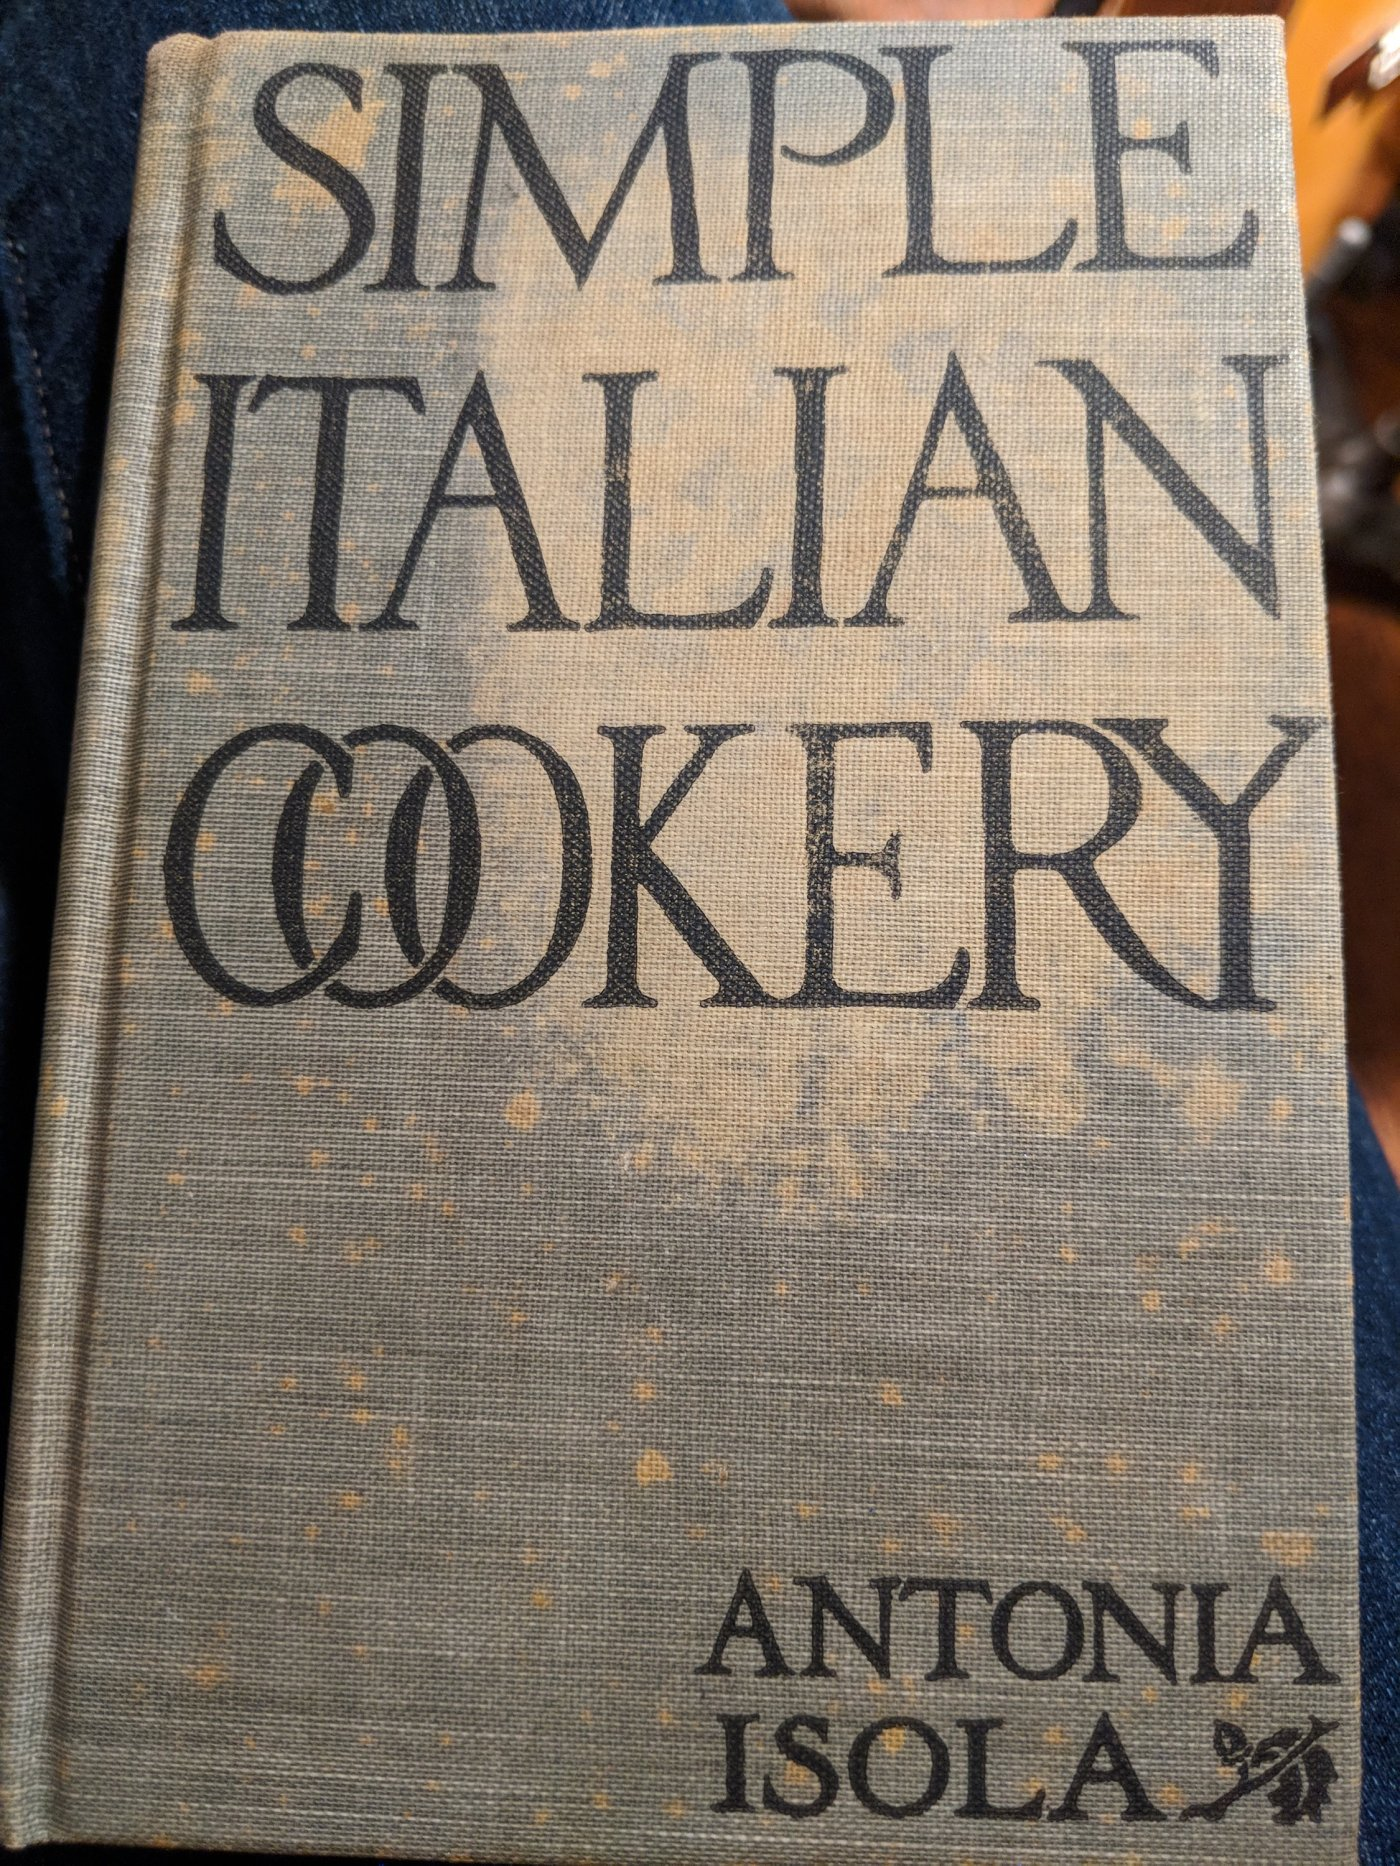 Simple Italian Cookery 1912